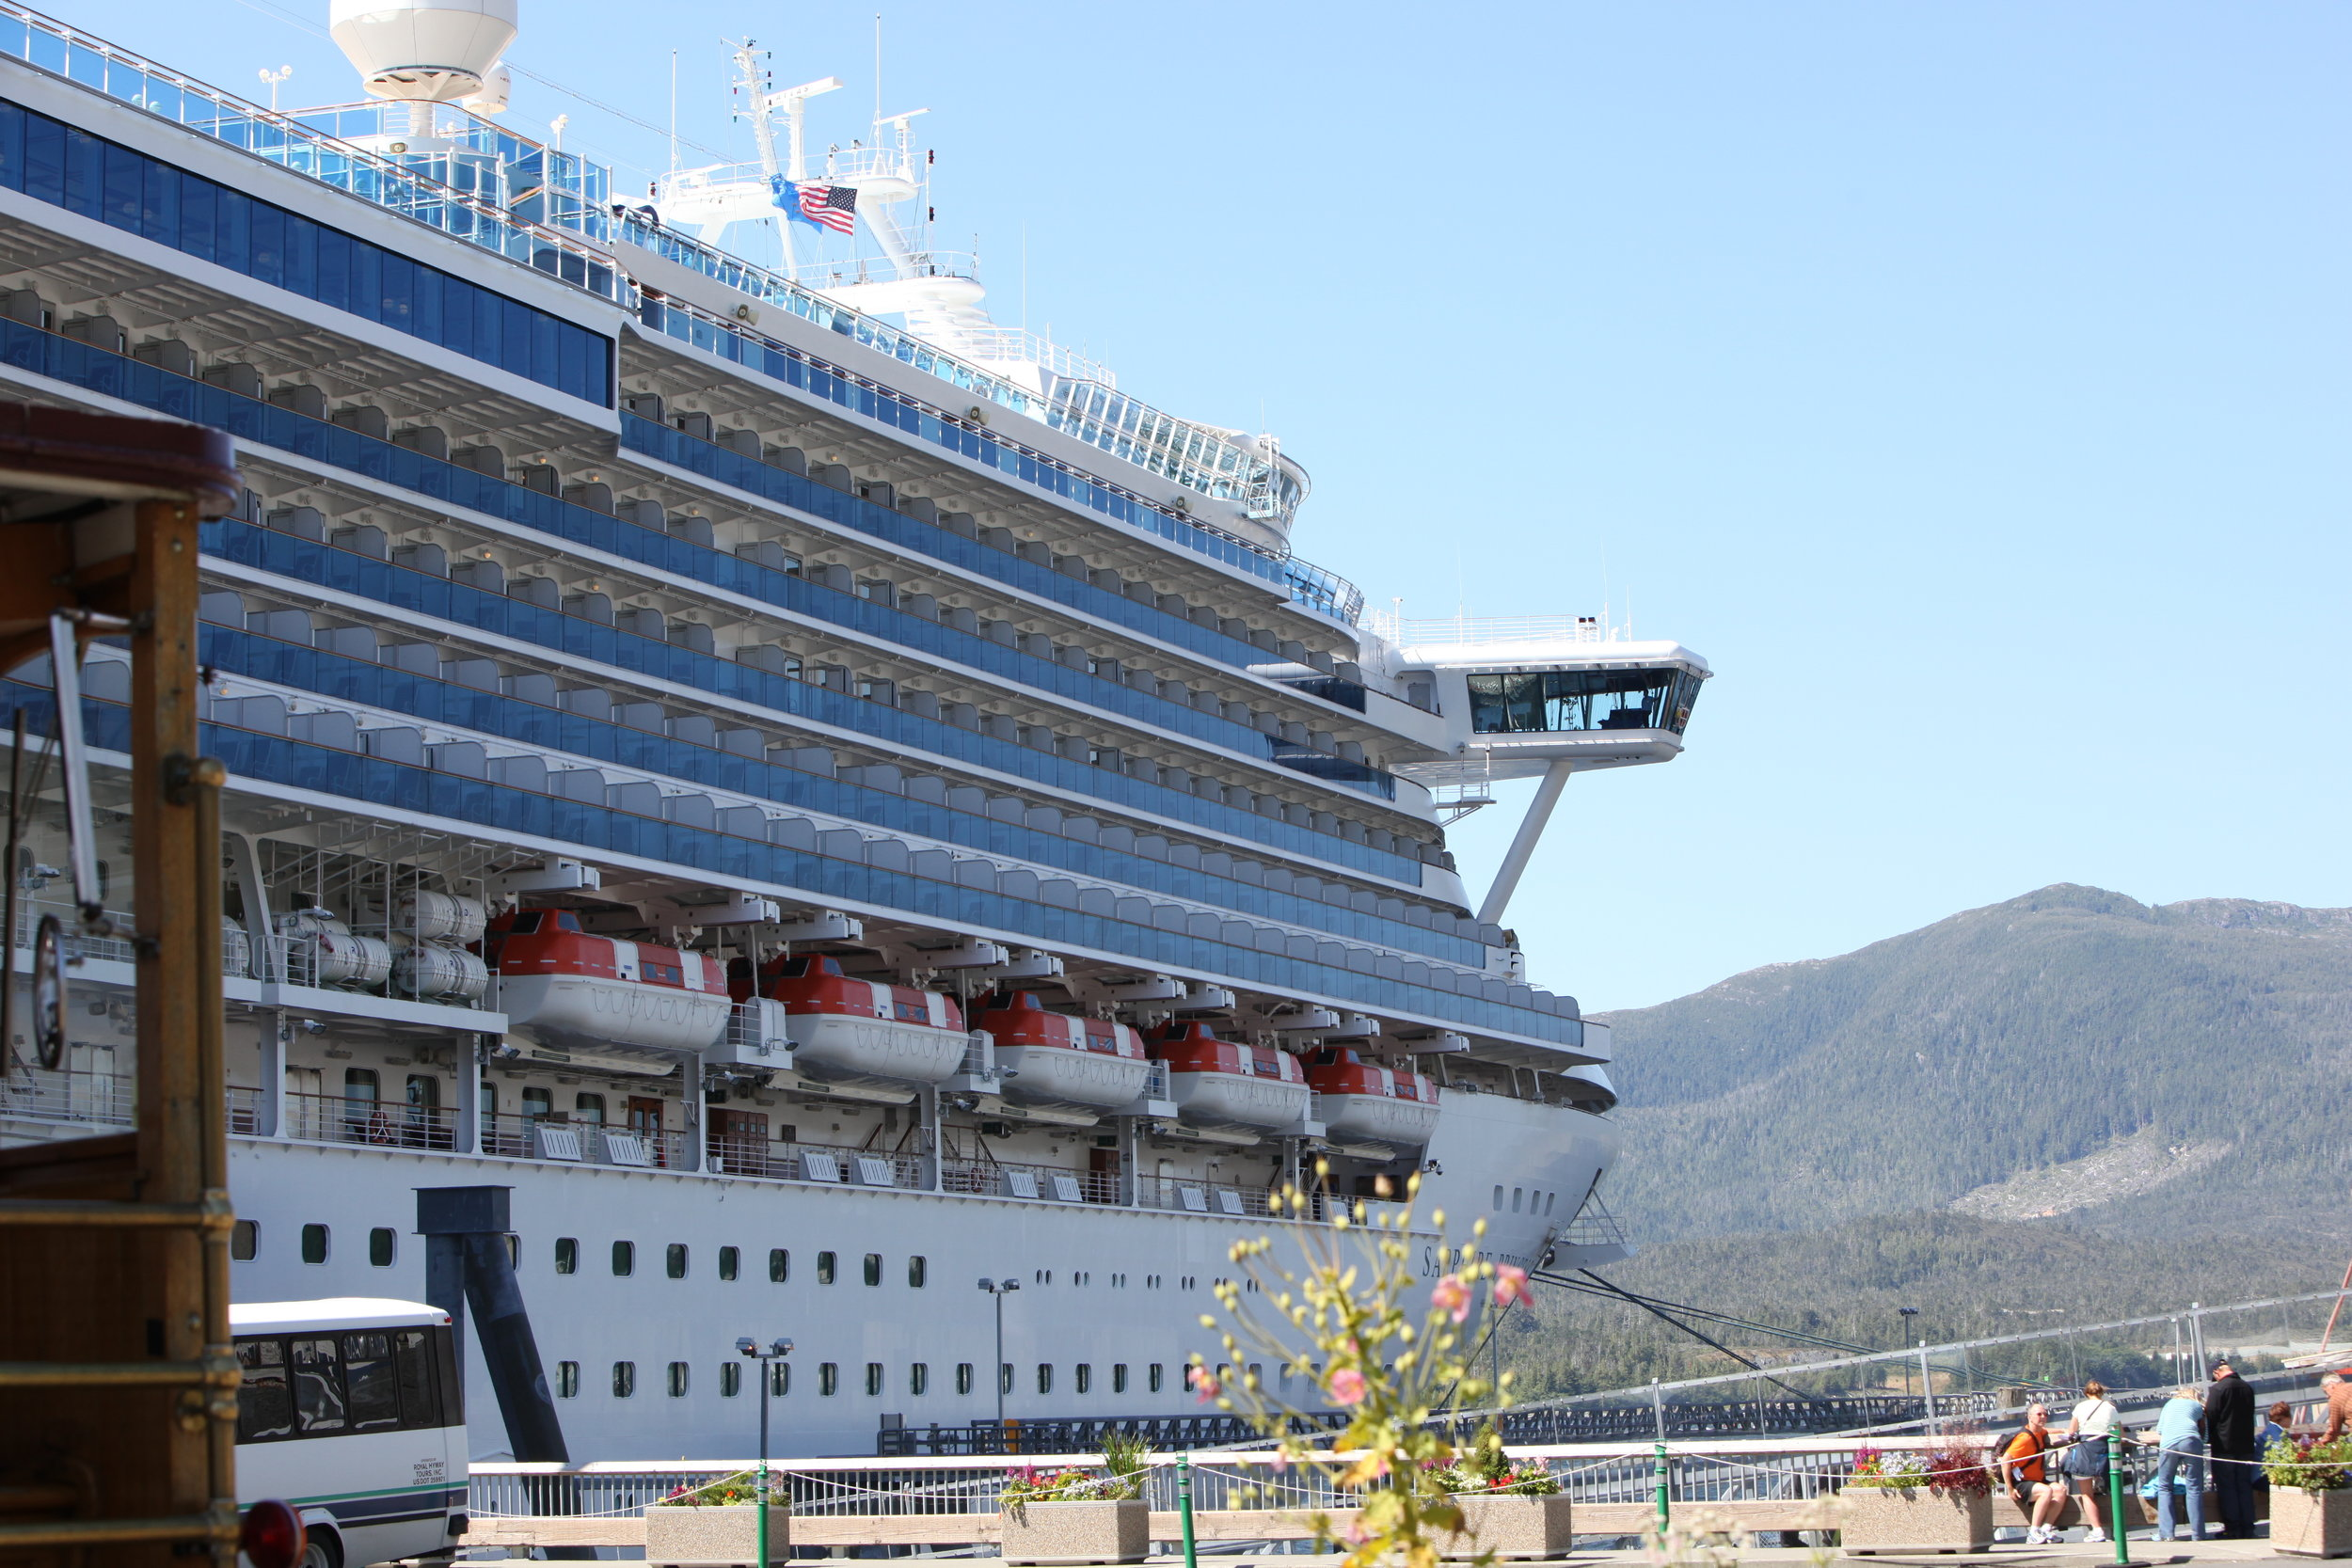 If I recall correctly, the name of our vessel was Sapphire Princess, one of the larger ships Princess owns.